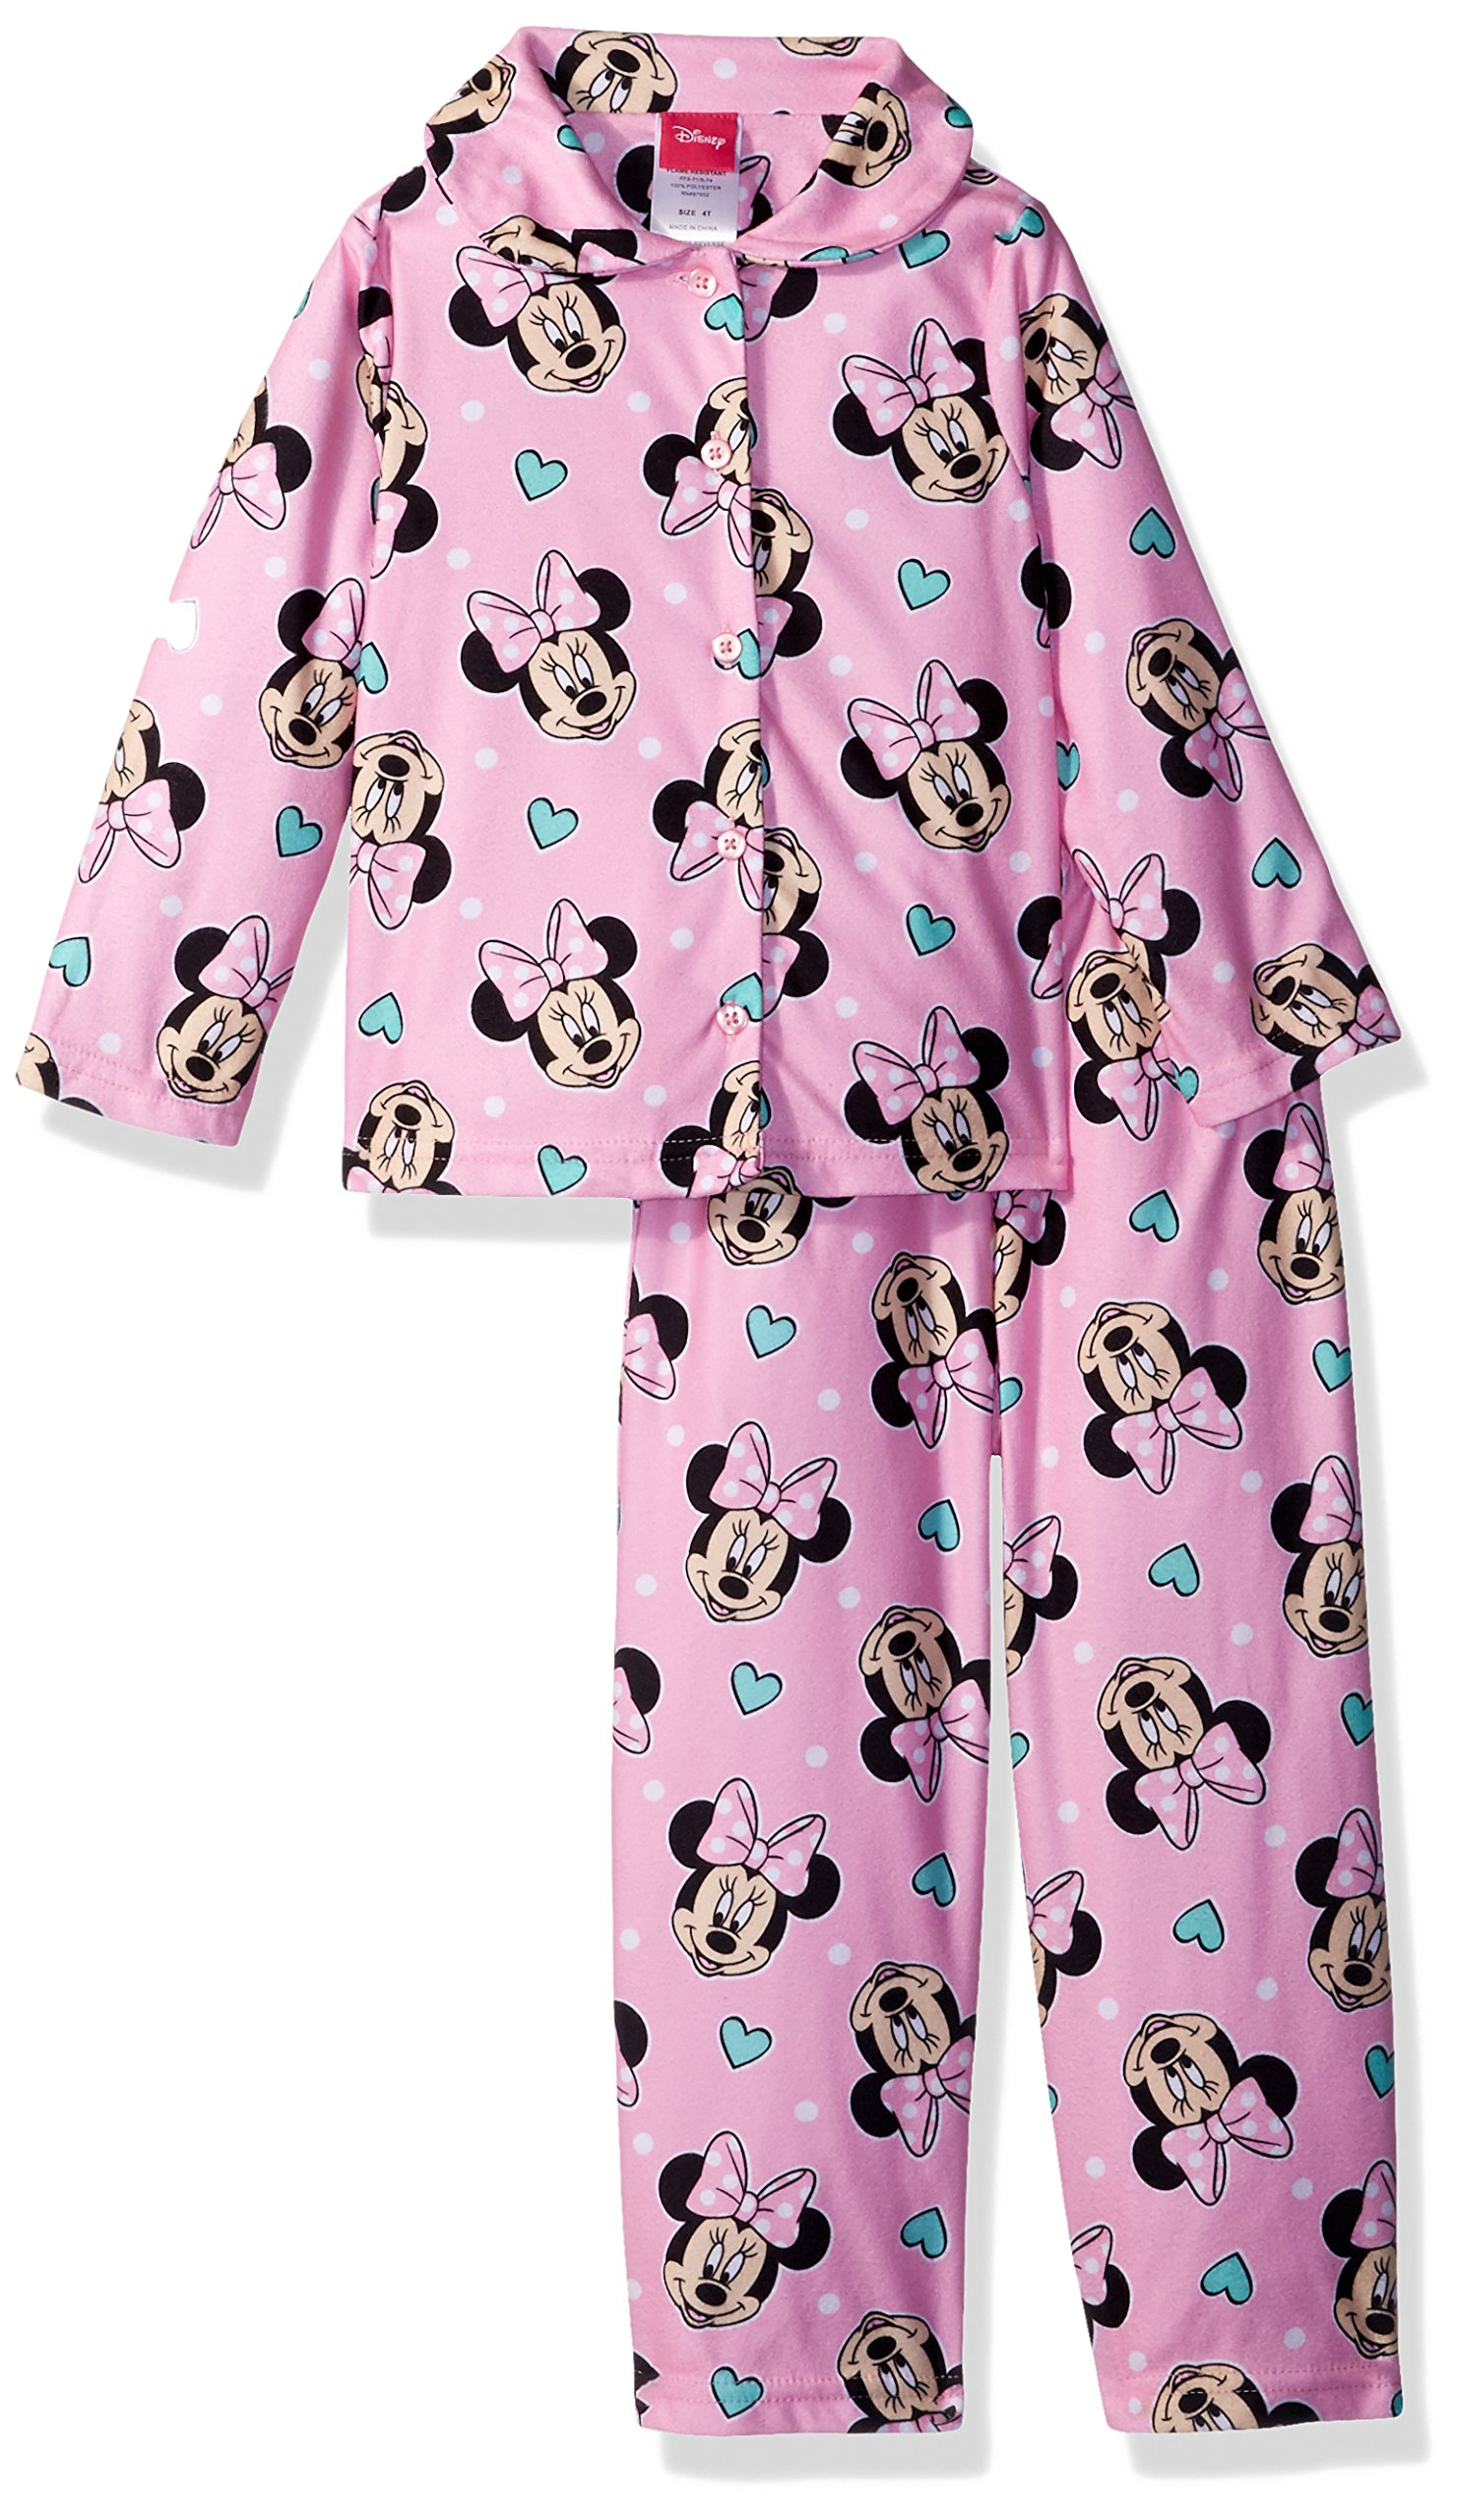 Disney Little Girls' Minnie Mouse 2-Piece Pajama Coat Set, Pink, 6 by Disney (Image #1)